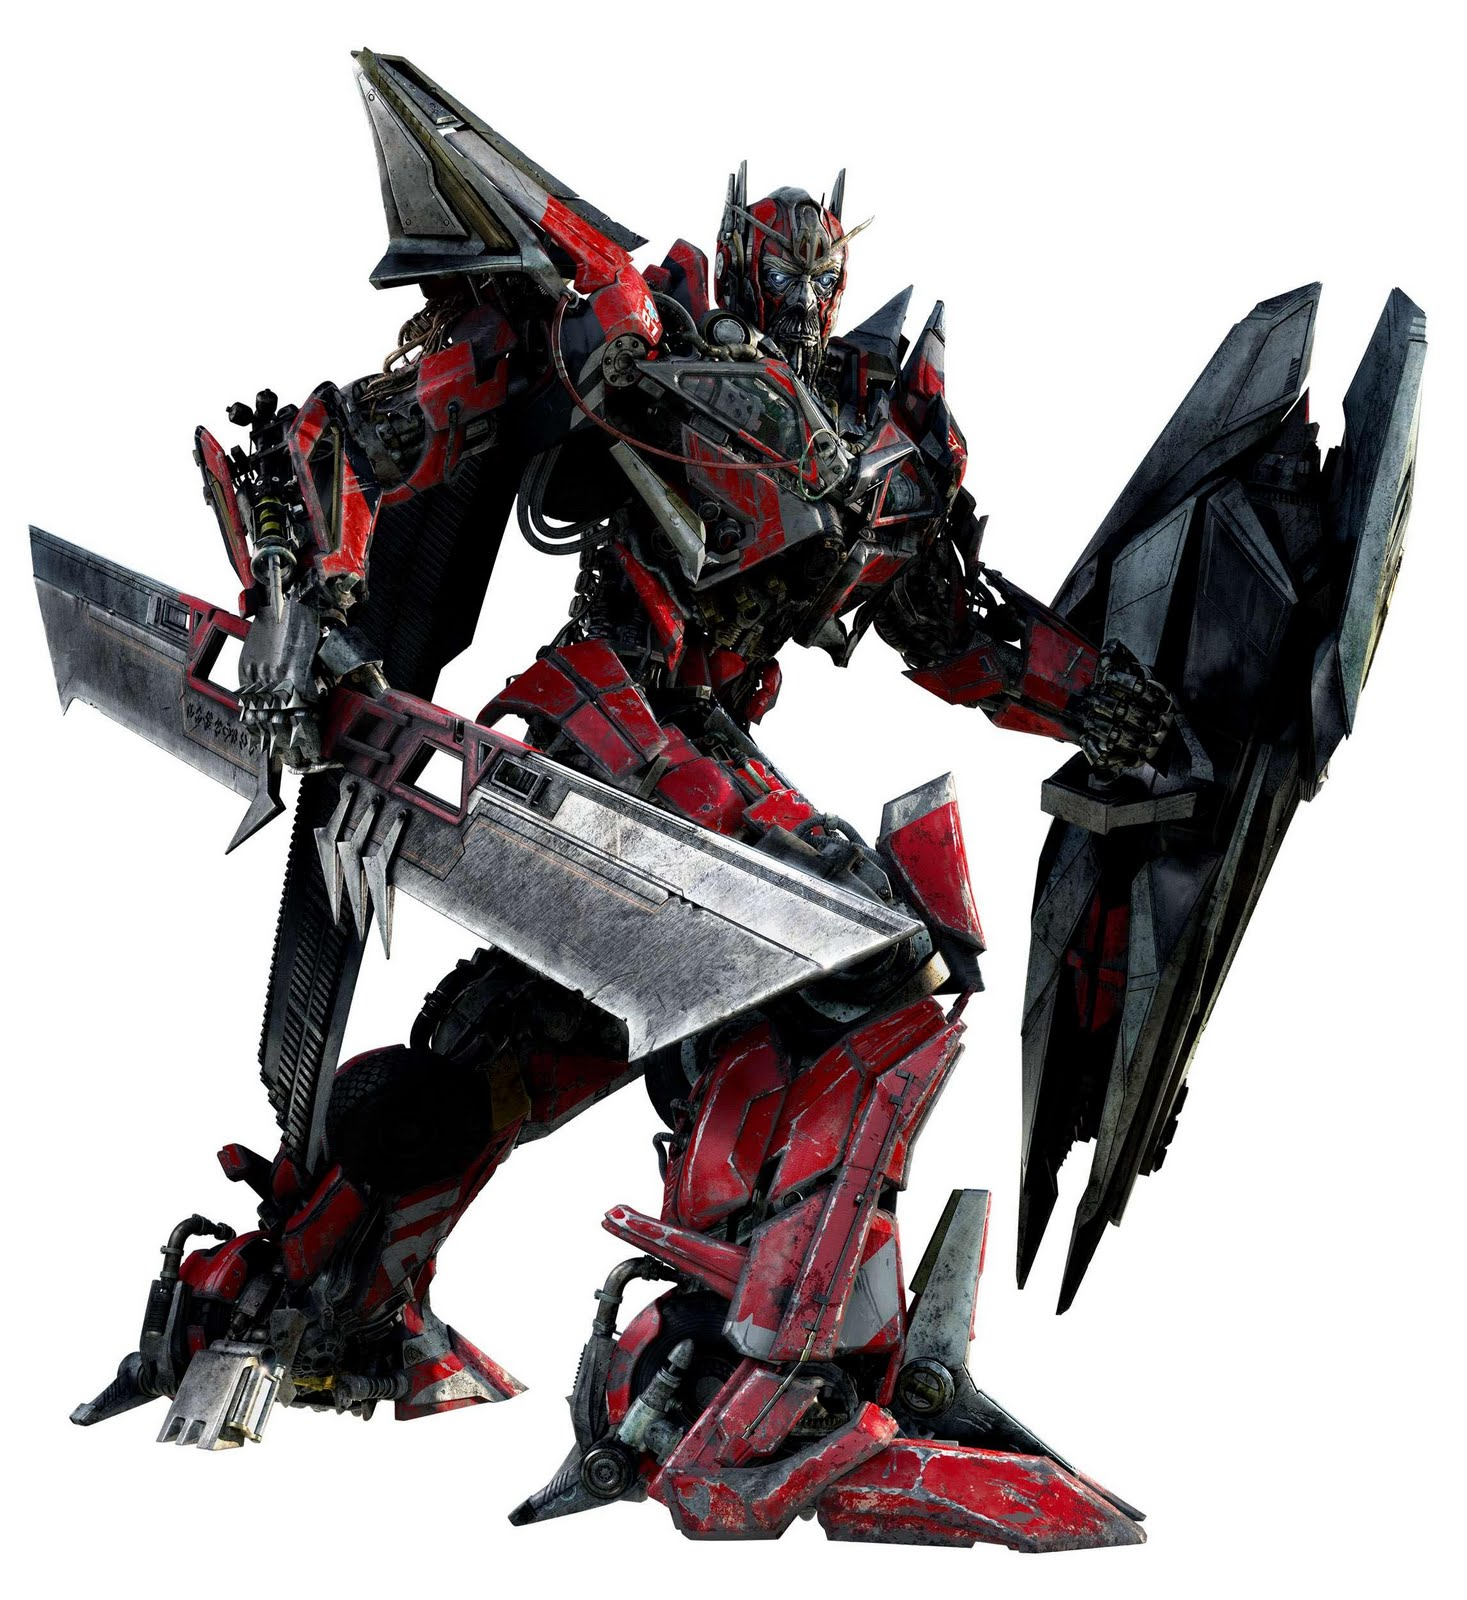 sentinel prime | transformers: dark of the moon wiki | fandom